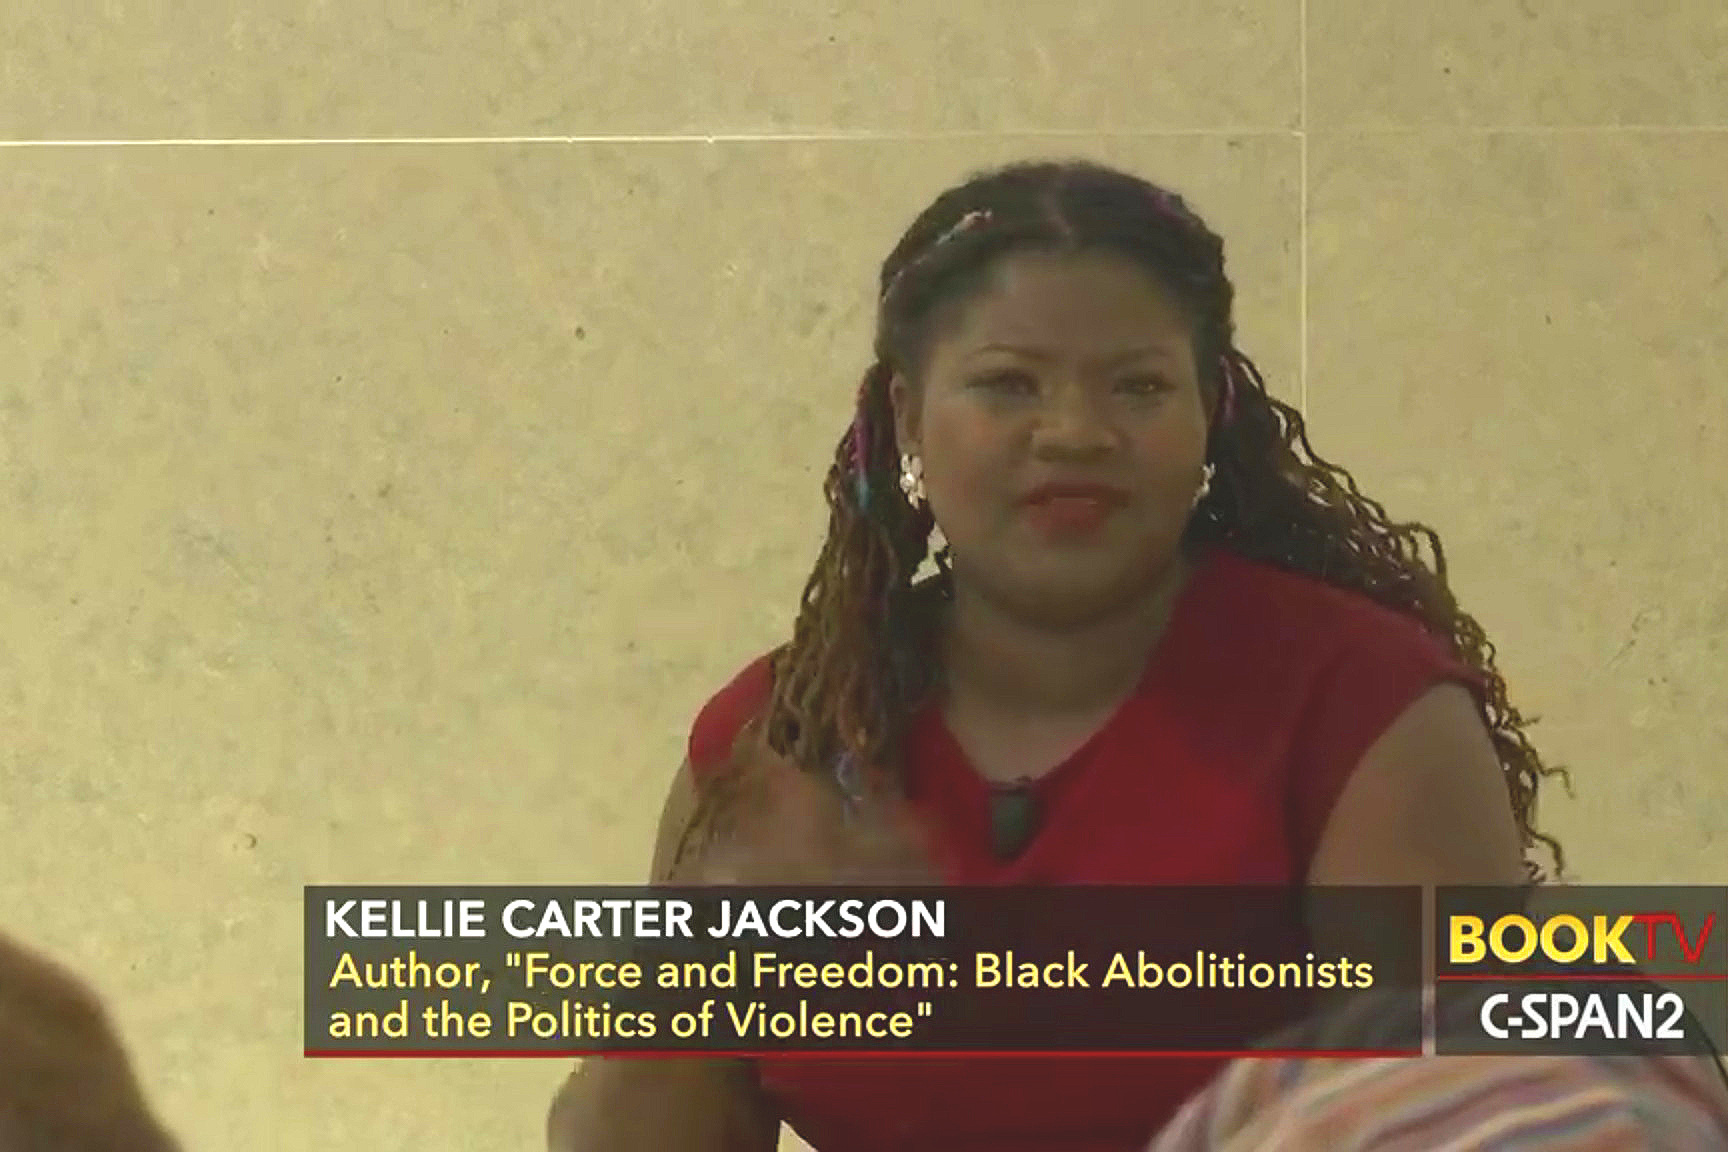 Wellesley College Africana Studies Professor Kellie Carter Jackson provided a history of the use of violence by black abolitionists.